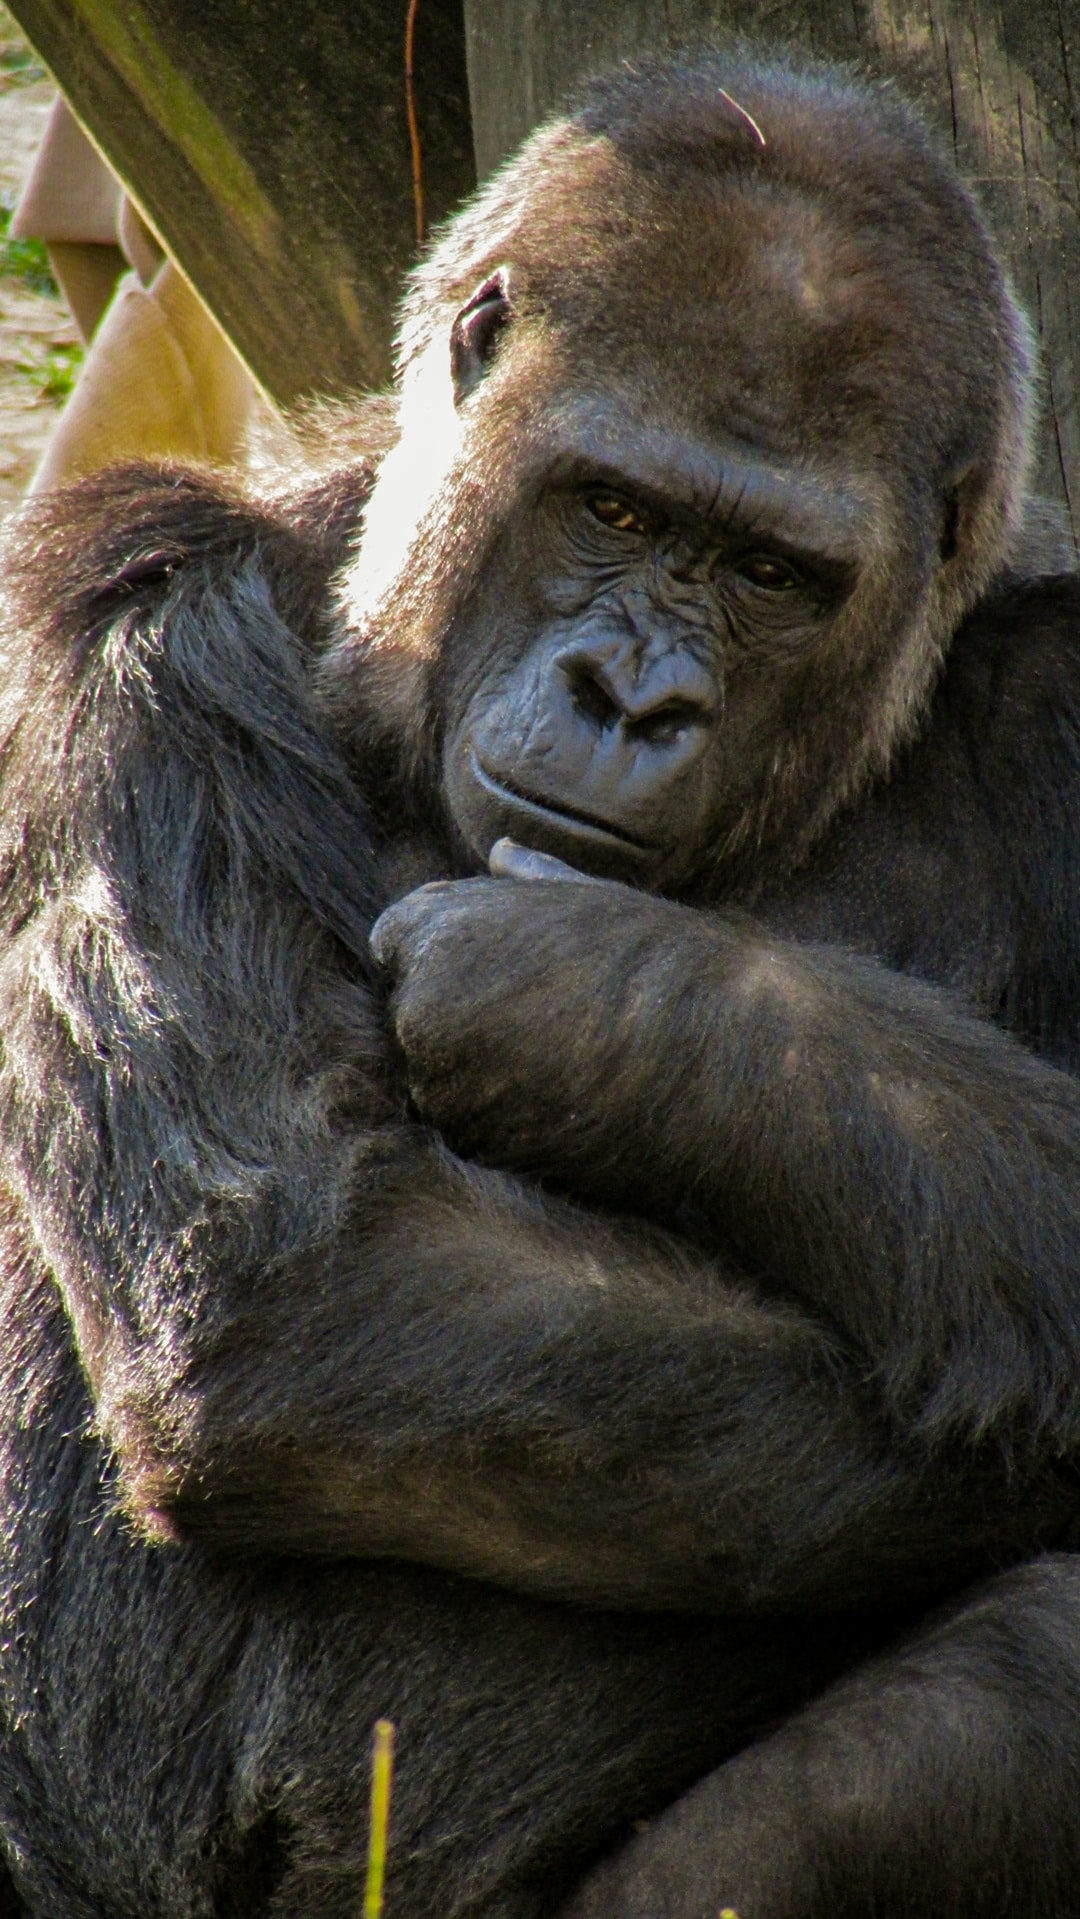 This gorilla sat, arms crossed, scratching its chin…deep in thought.